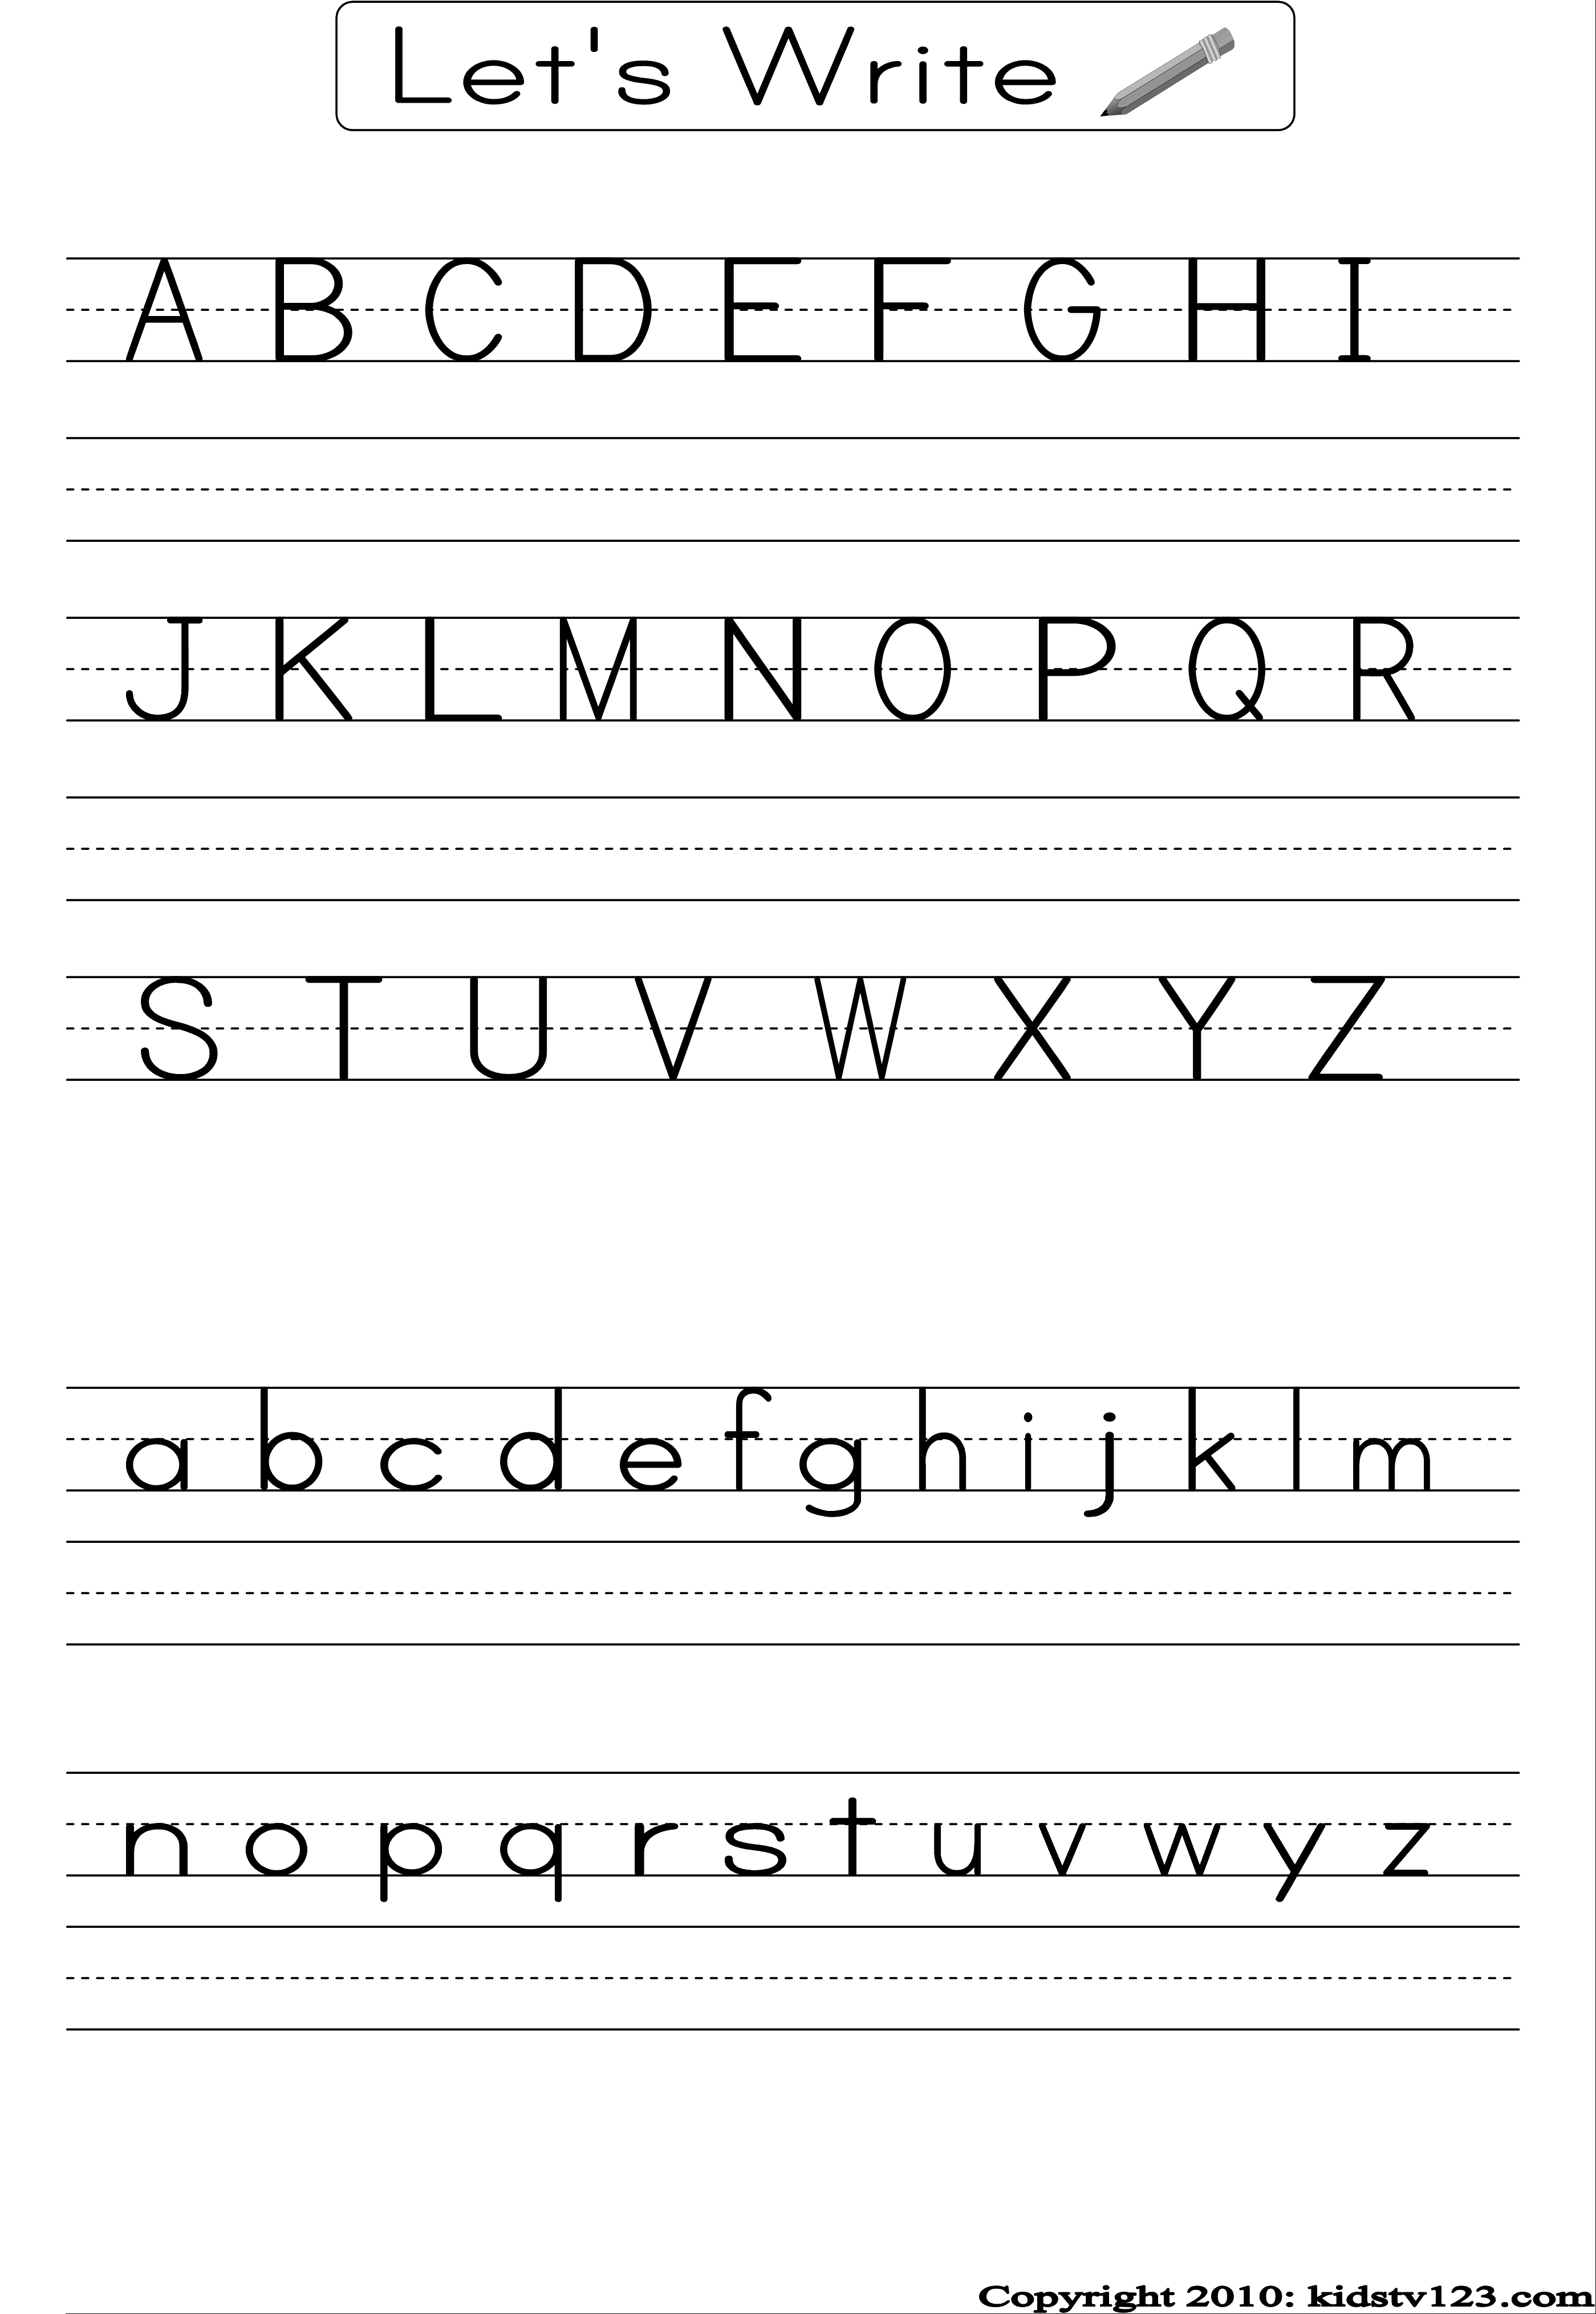 Free Printable Alphabet Worksheets, Preschool Writing And Pattern - Hooked On Phonics Free Printable Worksheets